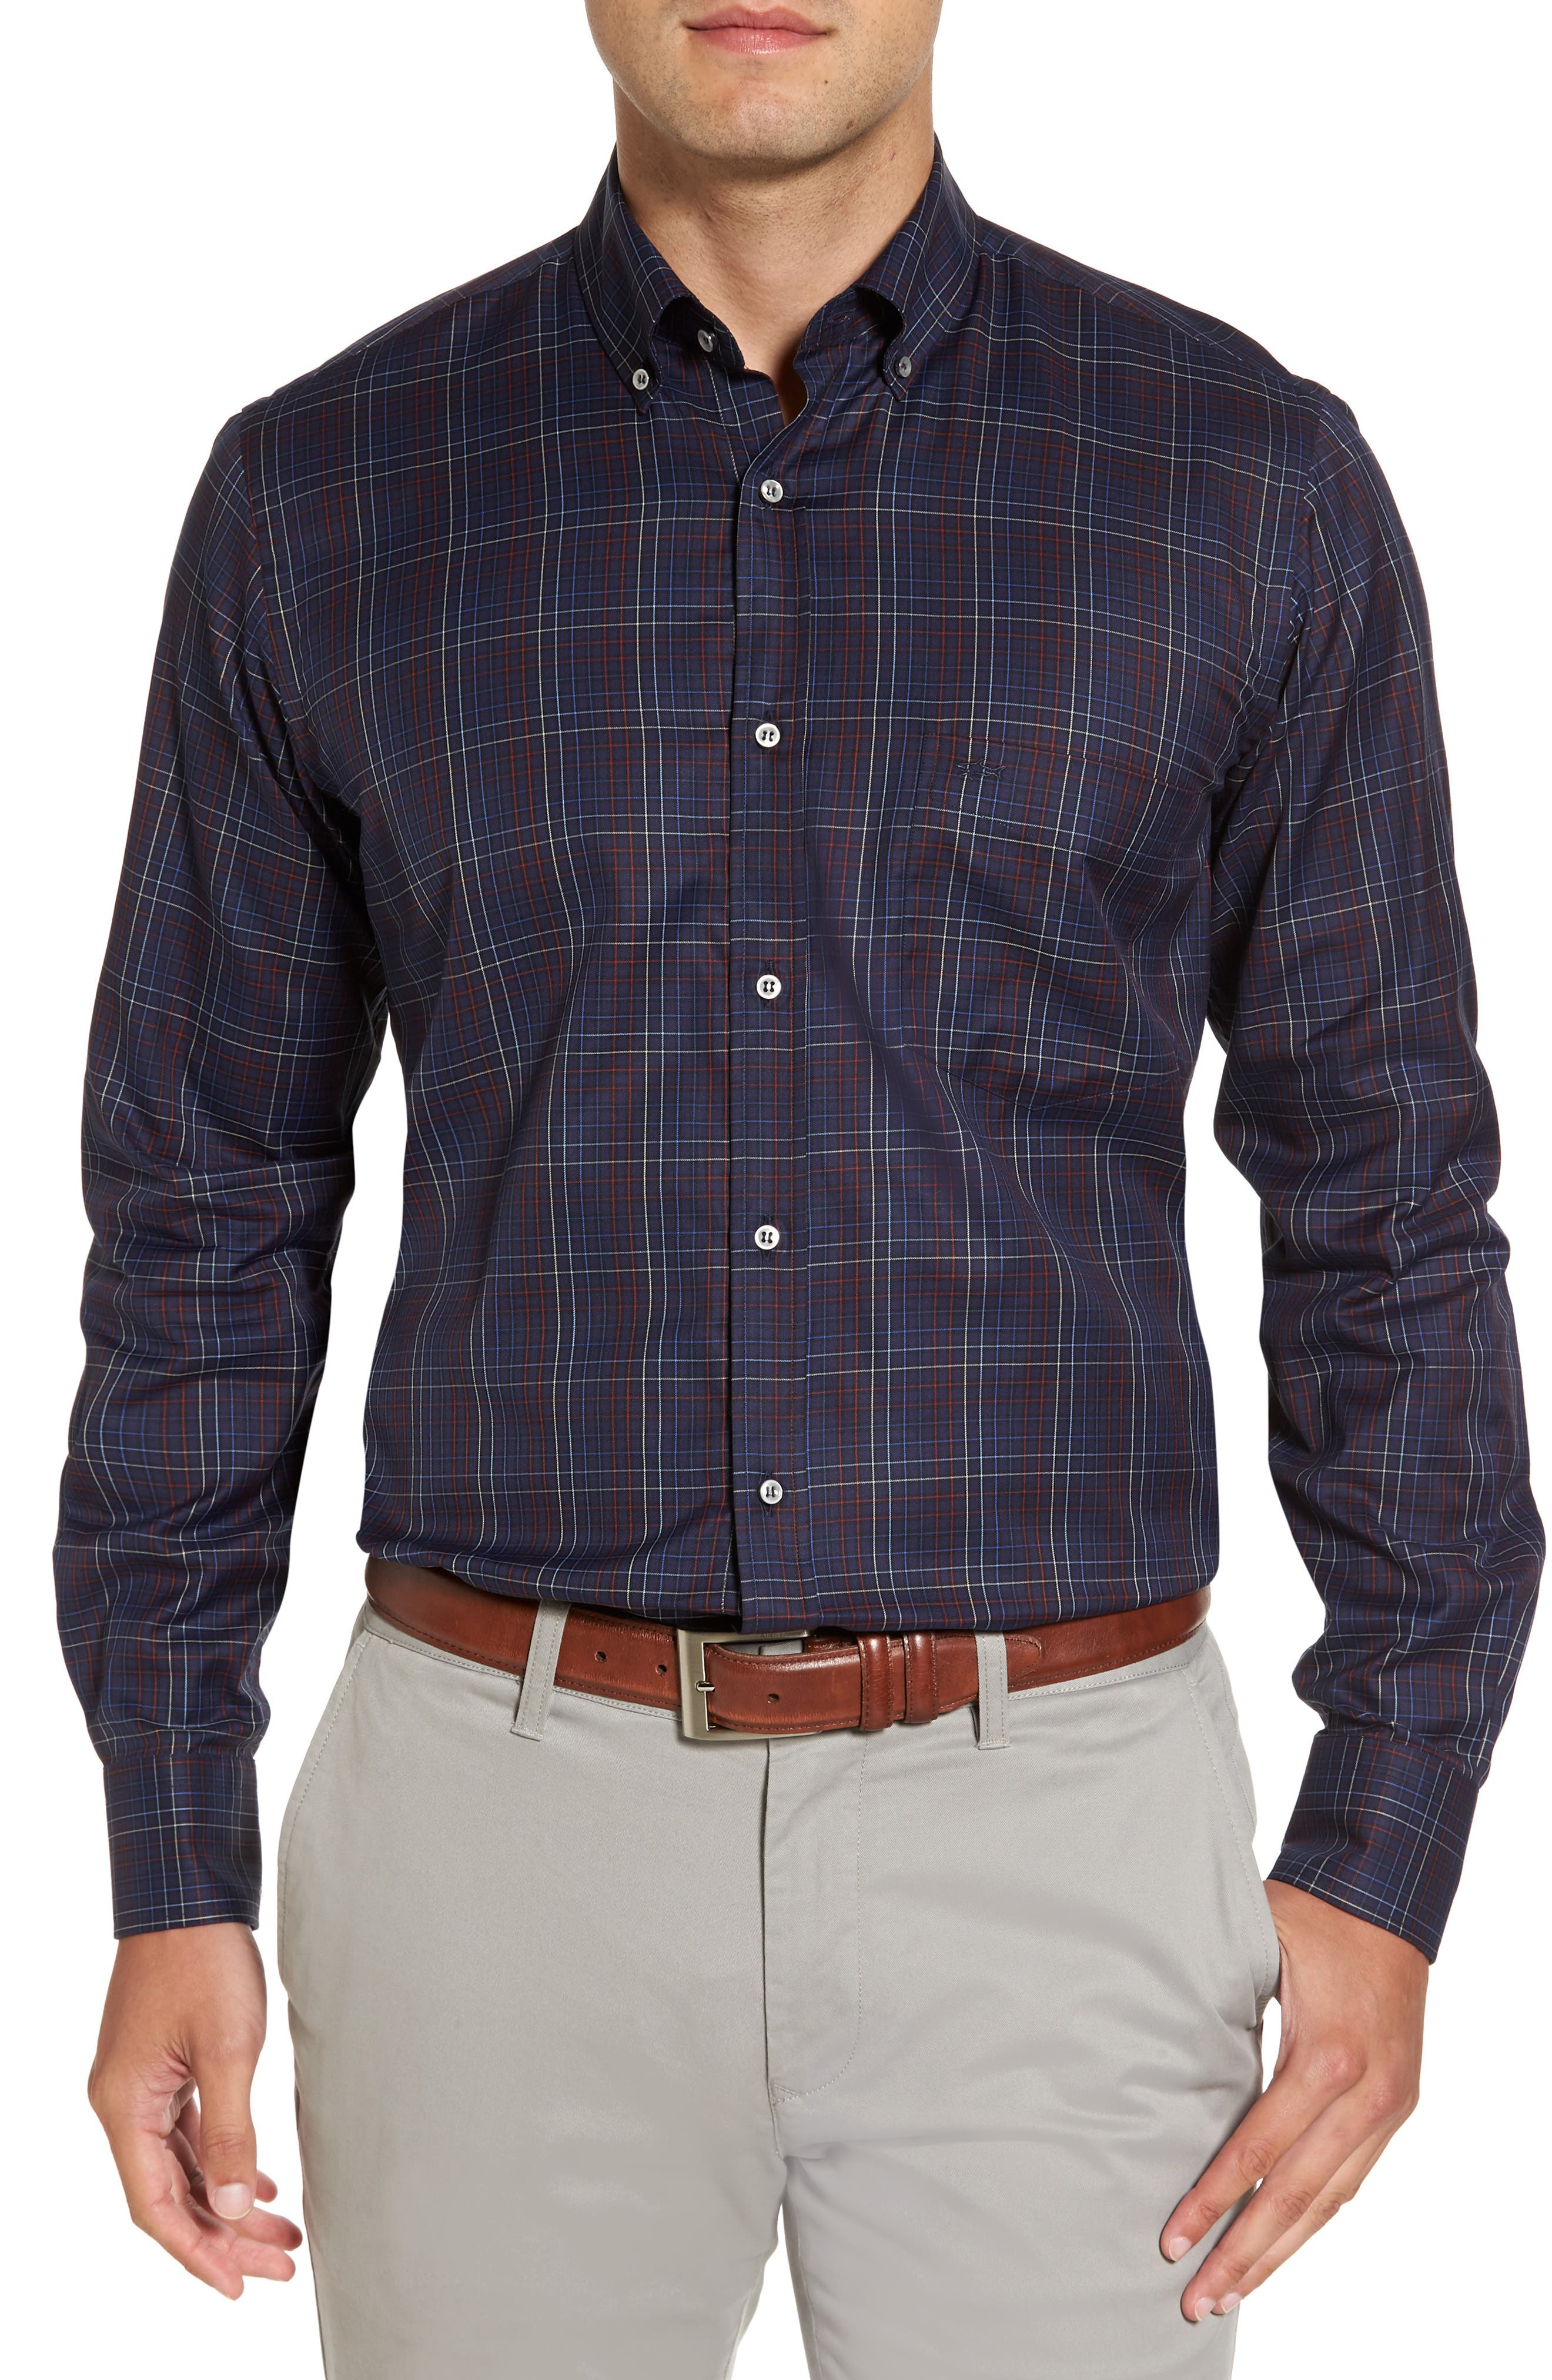 Paul&Shark Silver Collection Windowpane Sport Shirt,                         Main,                         color, Navy / Red